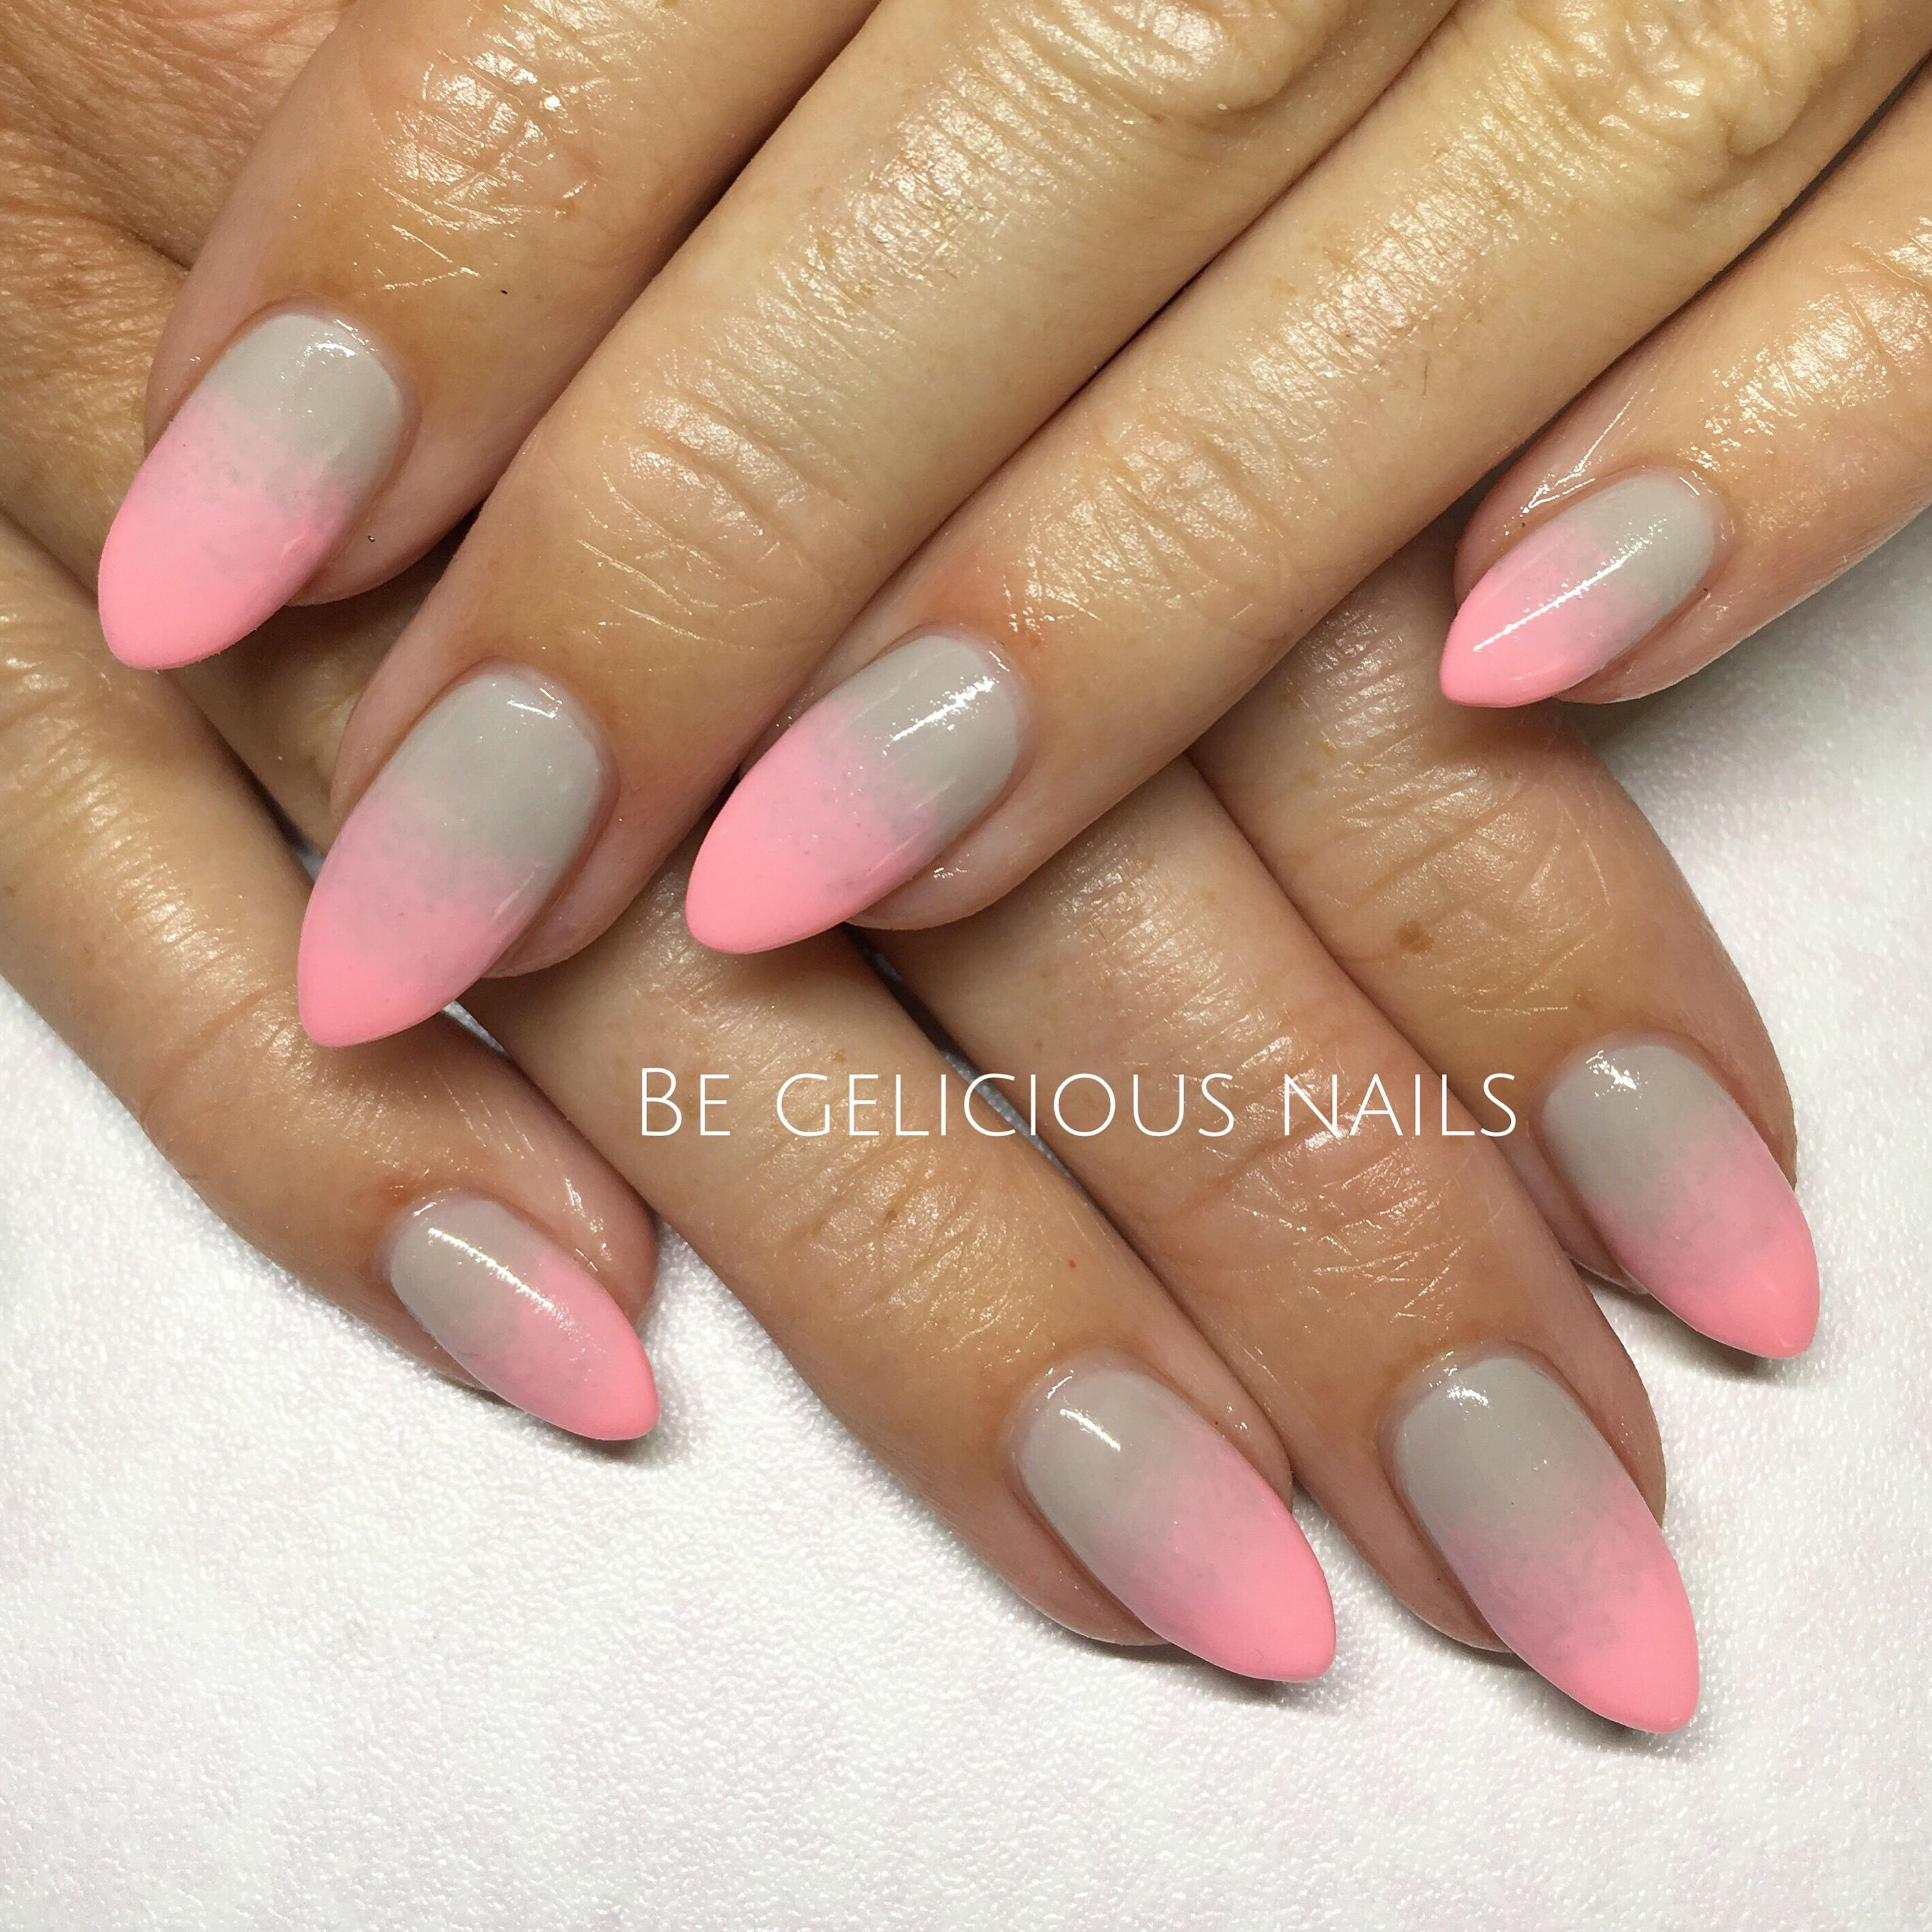 Calgel nails gel ombr nail art nail design pink grey calgel nails gel ombr nail art nail design pink grey prinsesfo Image collections